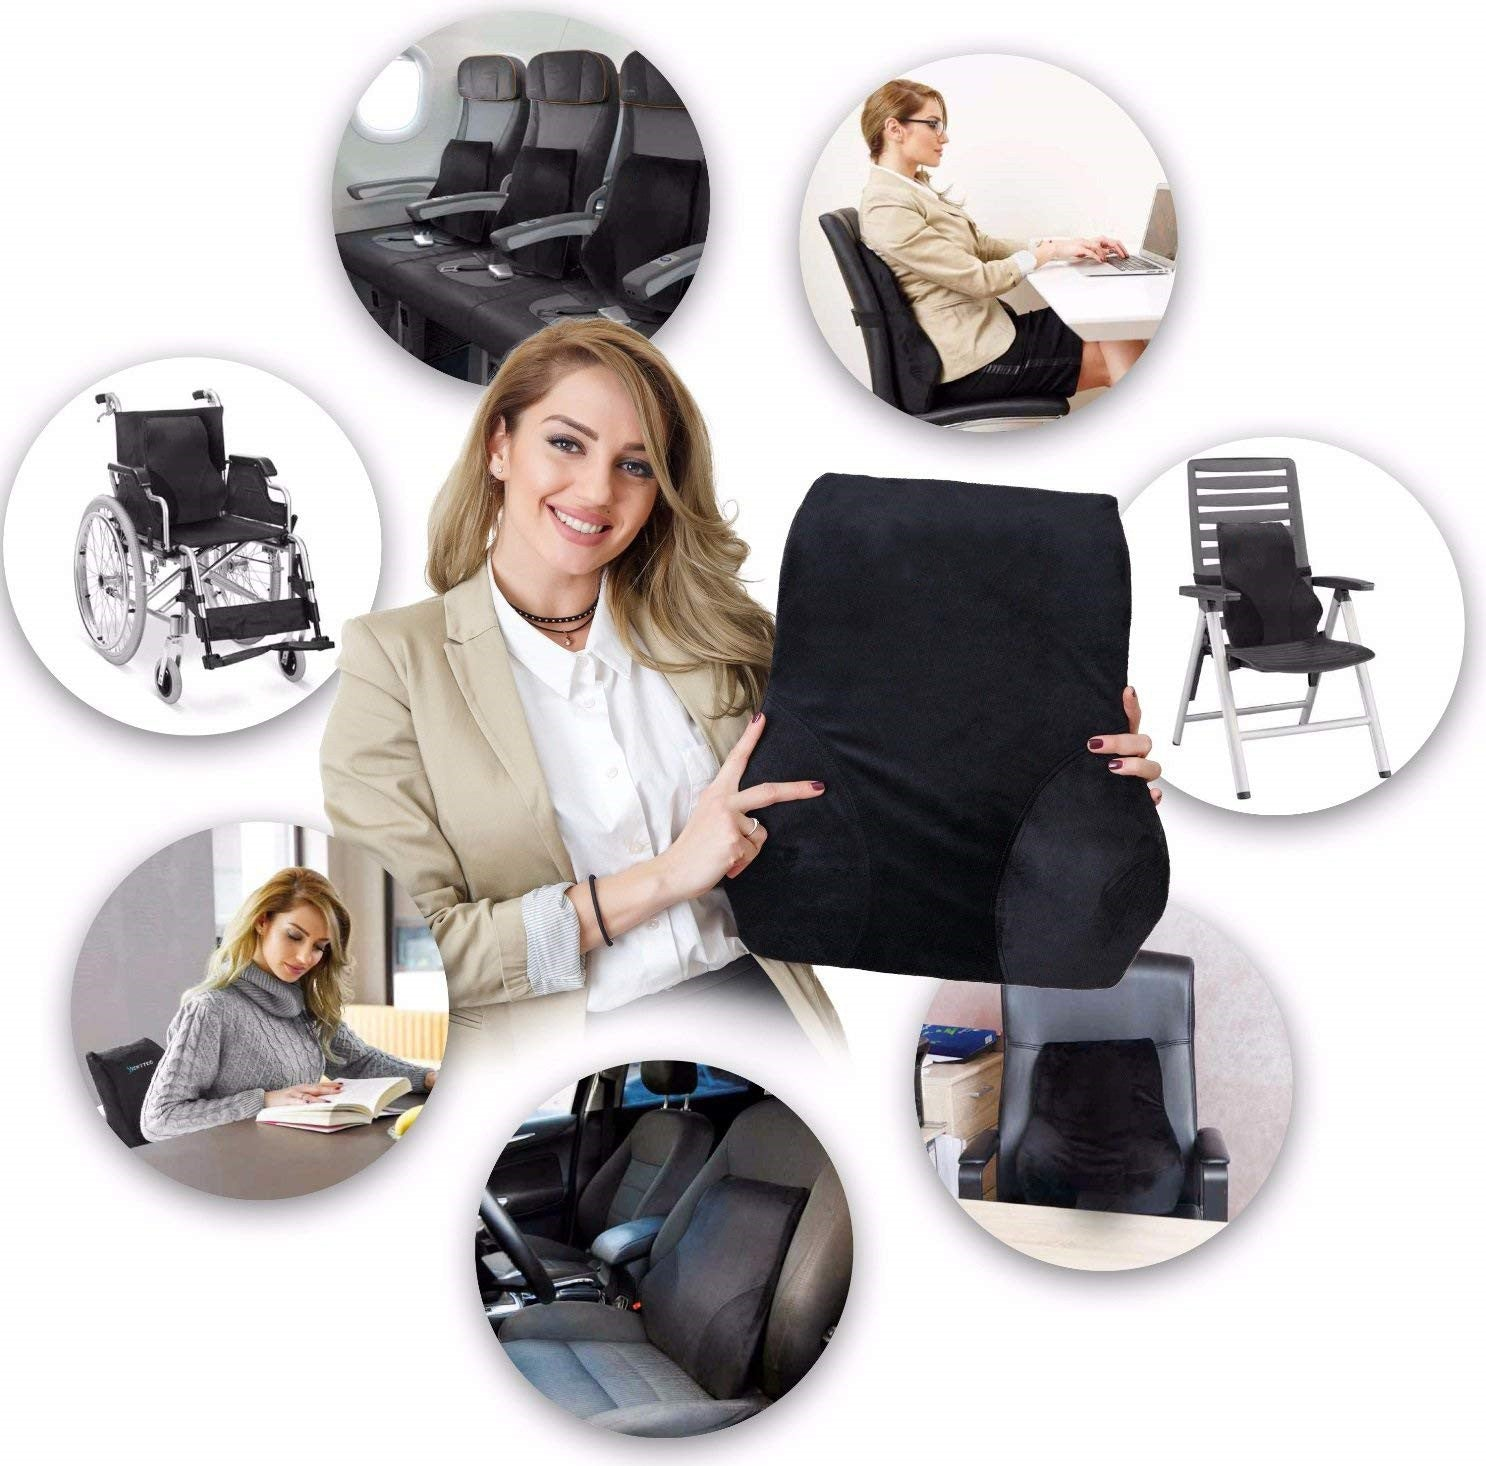 Brilliant Full Lumbar Support Premium Entire High Back Pillow For Office Desk Chair And Car Seat Creativecarmelina Interior Chair Design Creativecarmelinacom